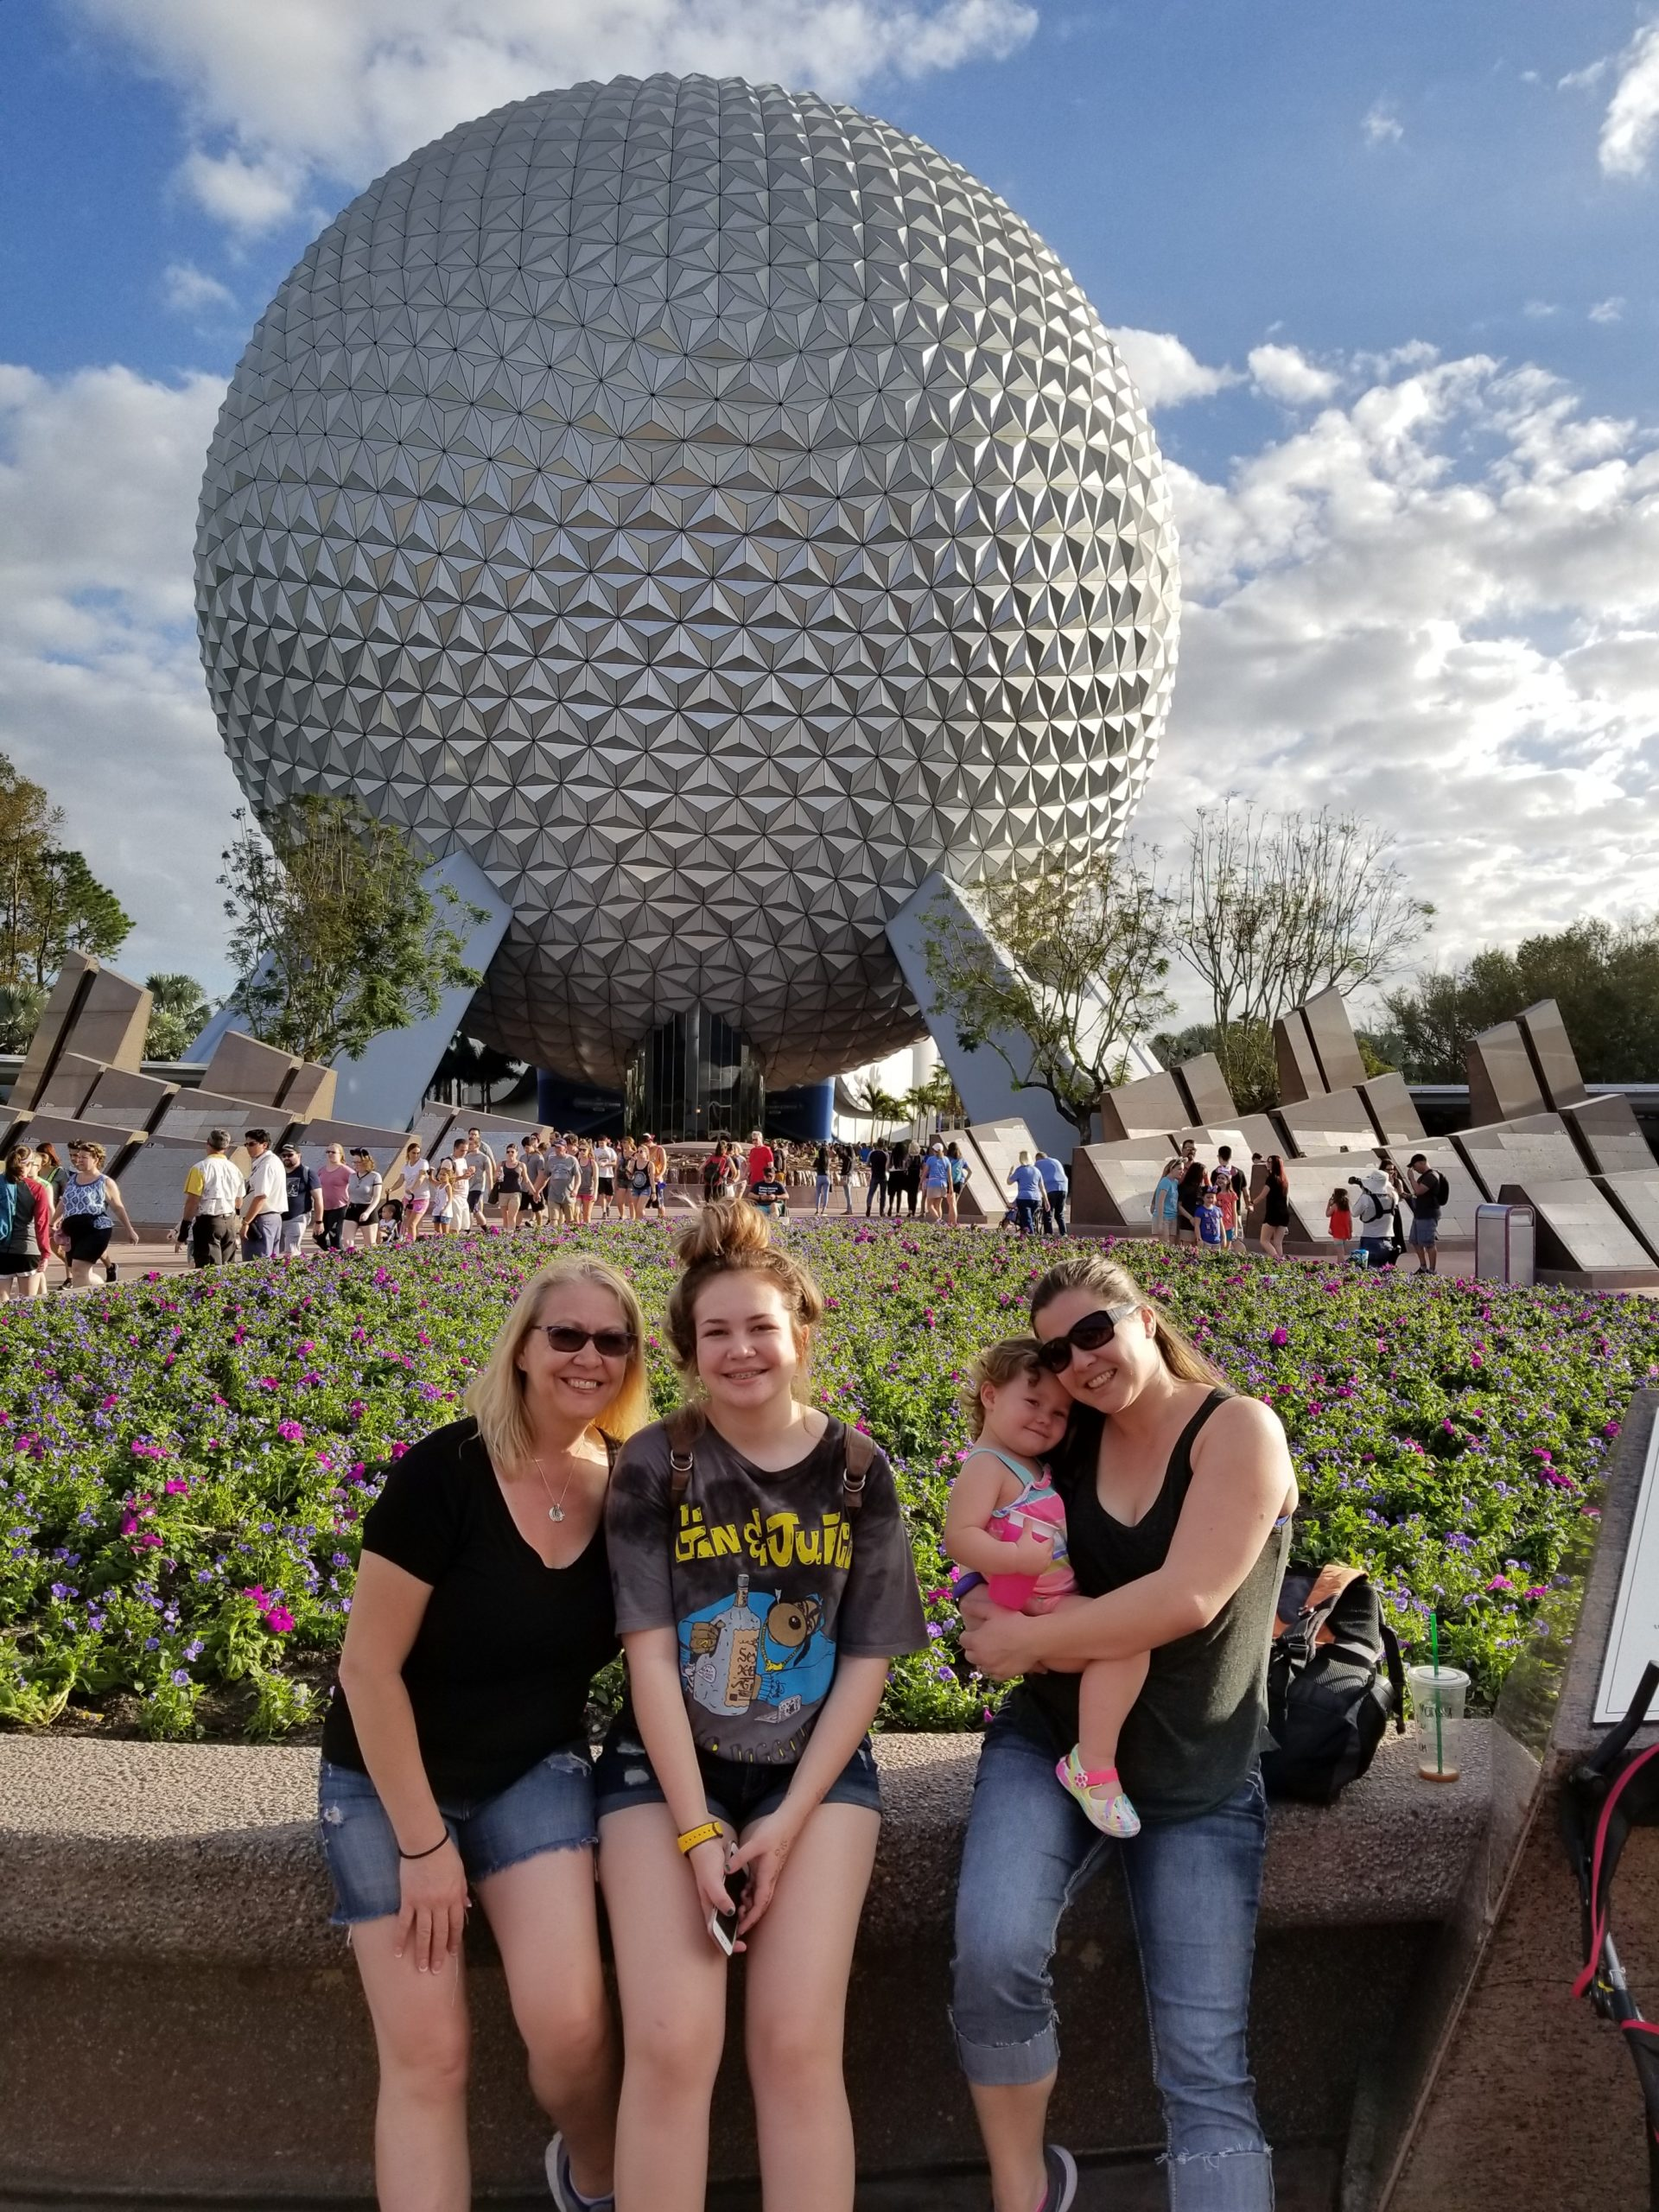 Even though Walt Disney World's Epcot might be the grandparents favorite Disney Parks, preschoolers will also find plenty to do.